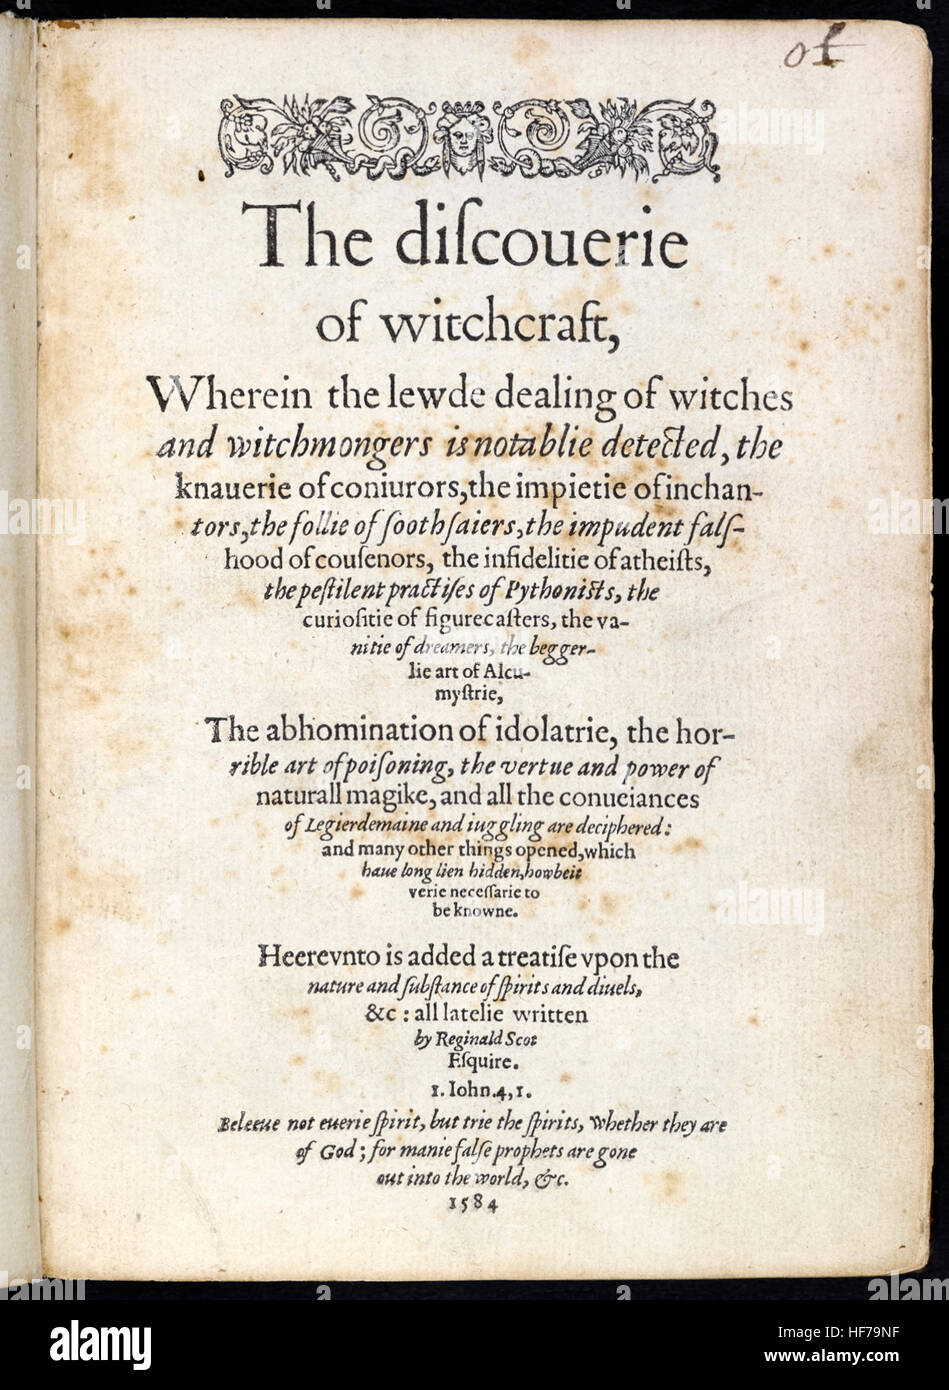 Title page from 'The Discoverie of Witchcraft' by Reginald Scot (1538-1599) published in 1584; a treatise that sought - Stock Image